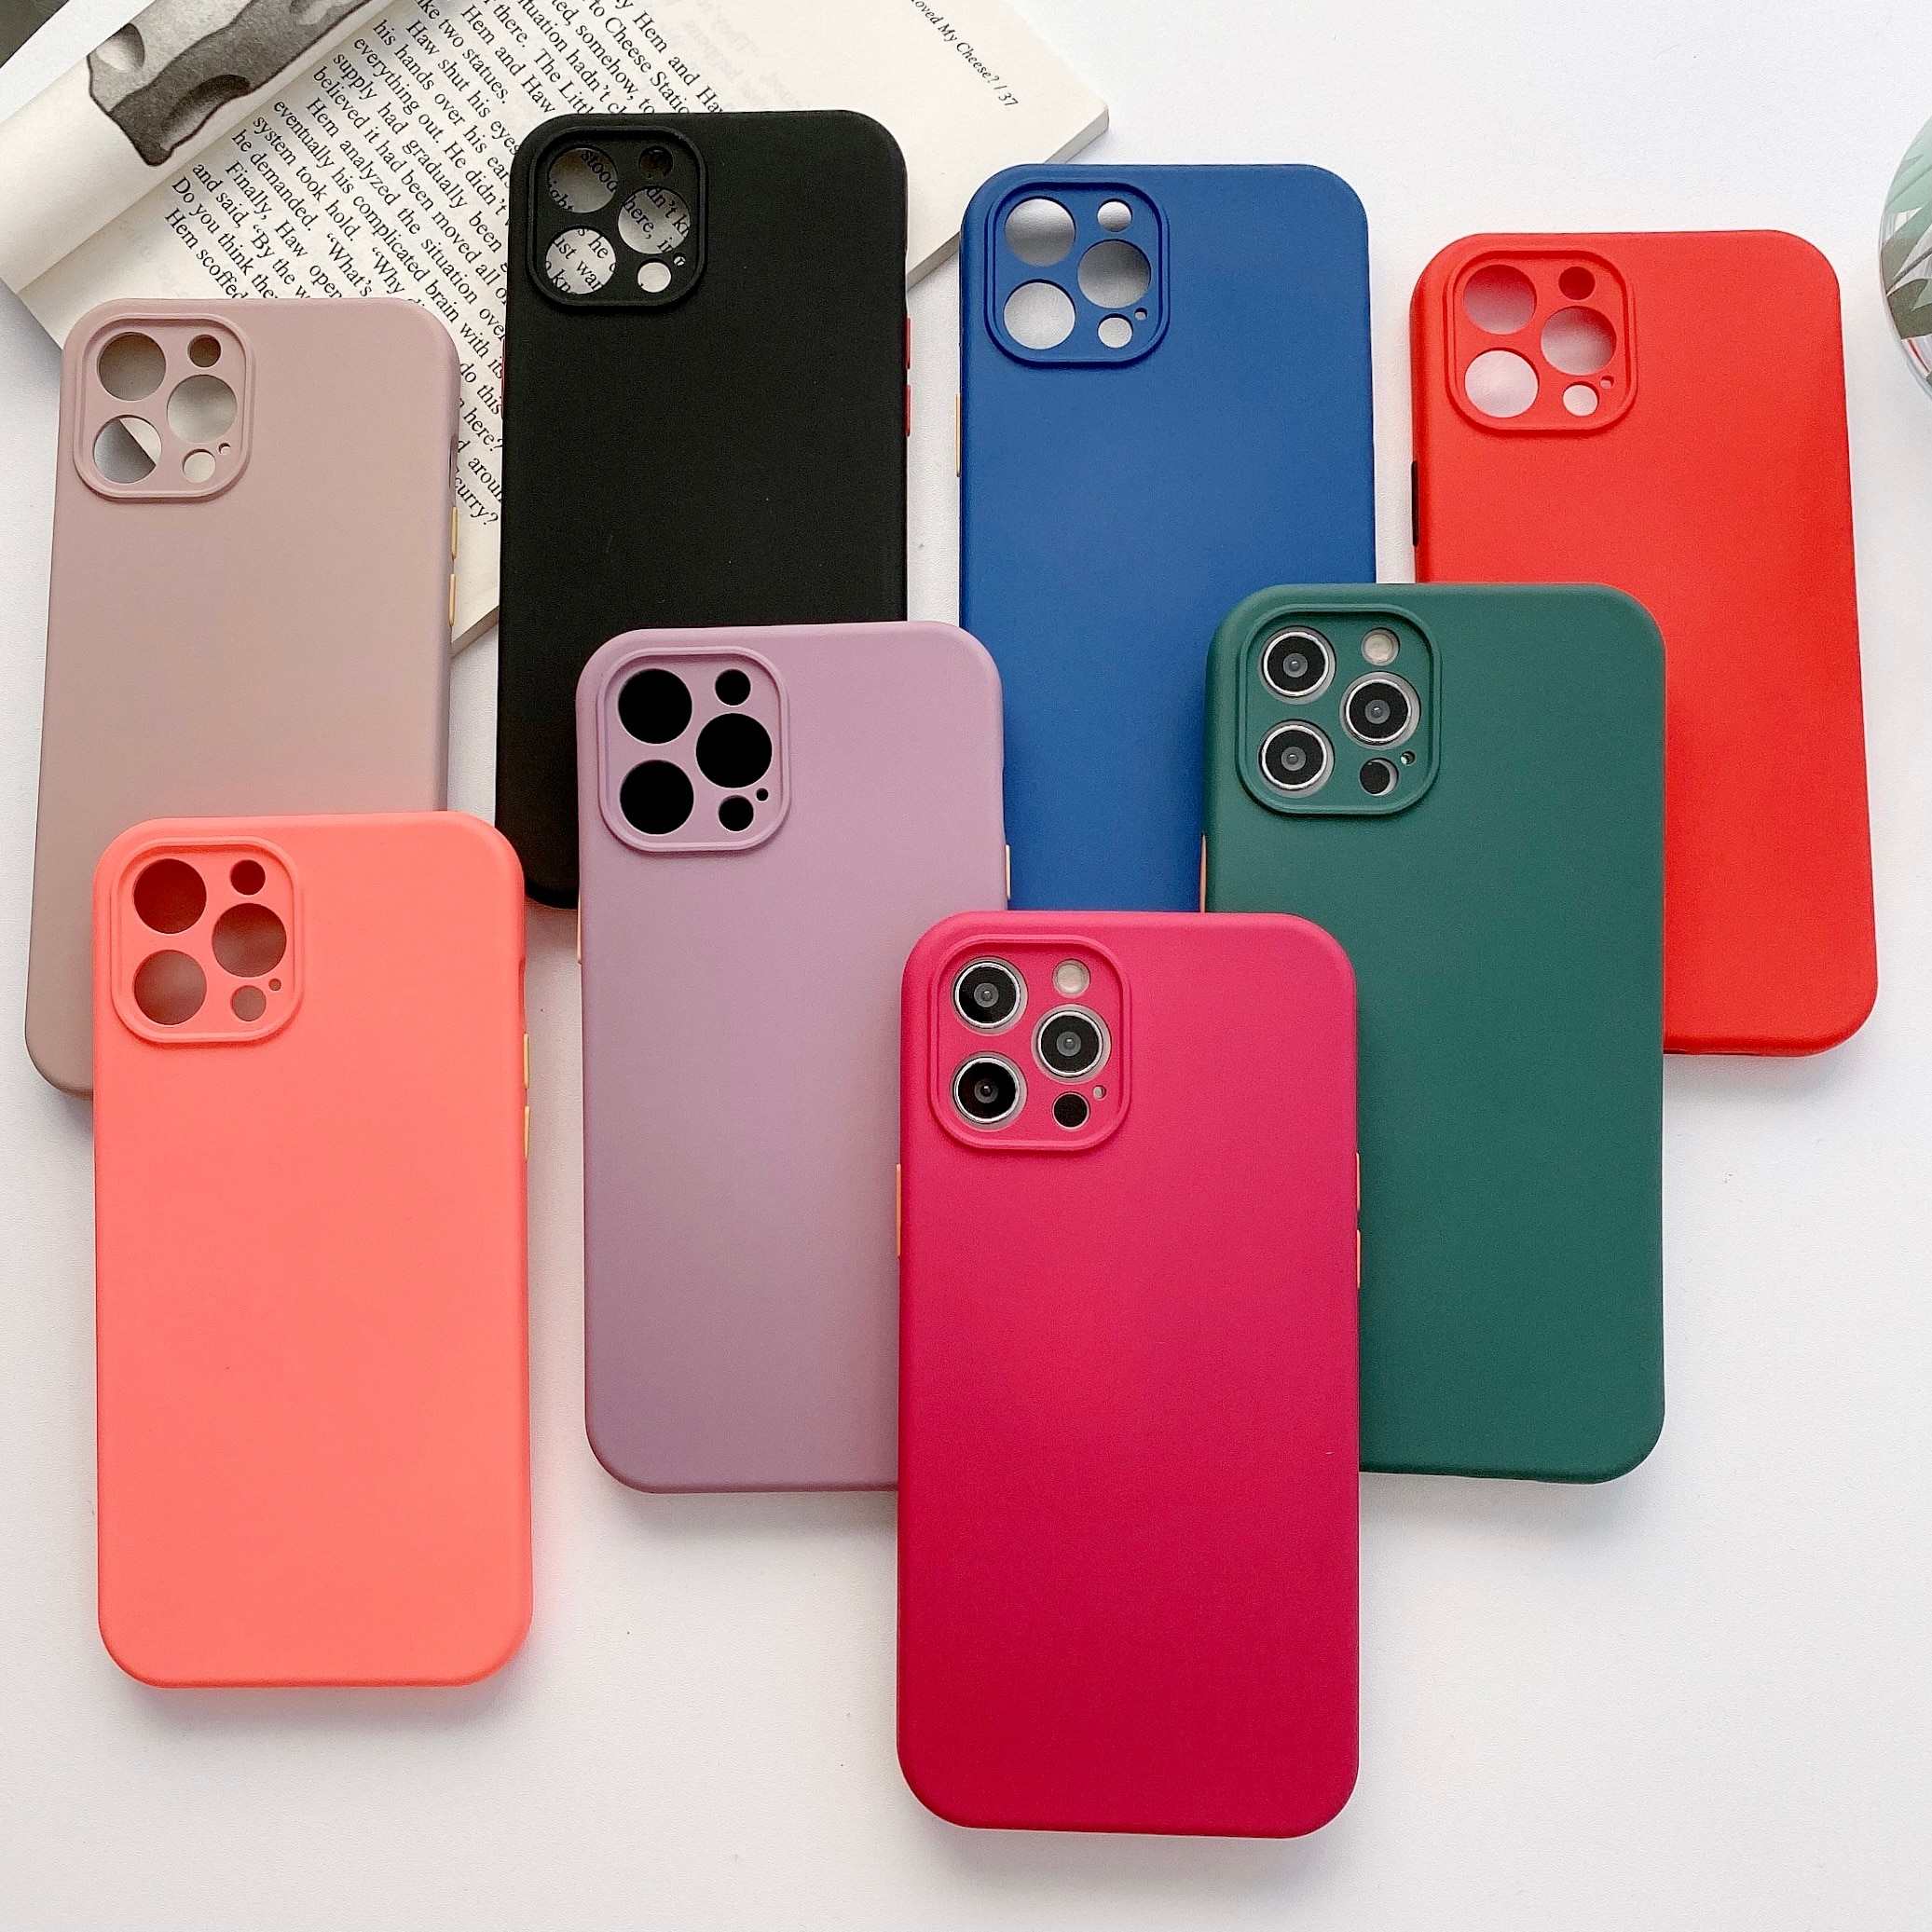 TMWBBT Silicone Luxury Case For Apple iPhone 12 11 Pro Max mini SE 2020 X XR XS Max 7 8 Plus Card St